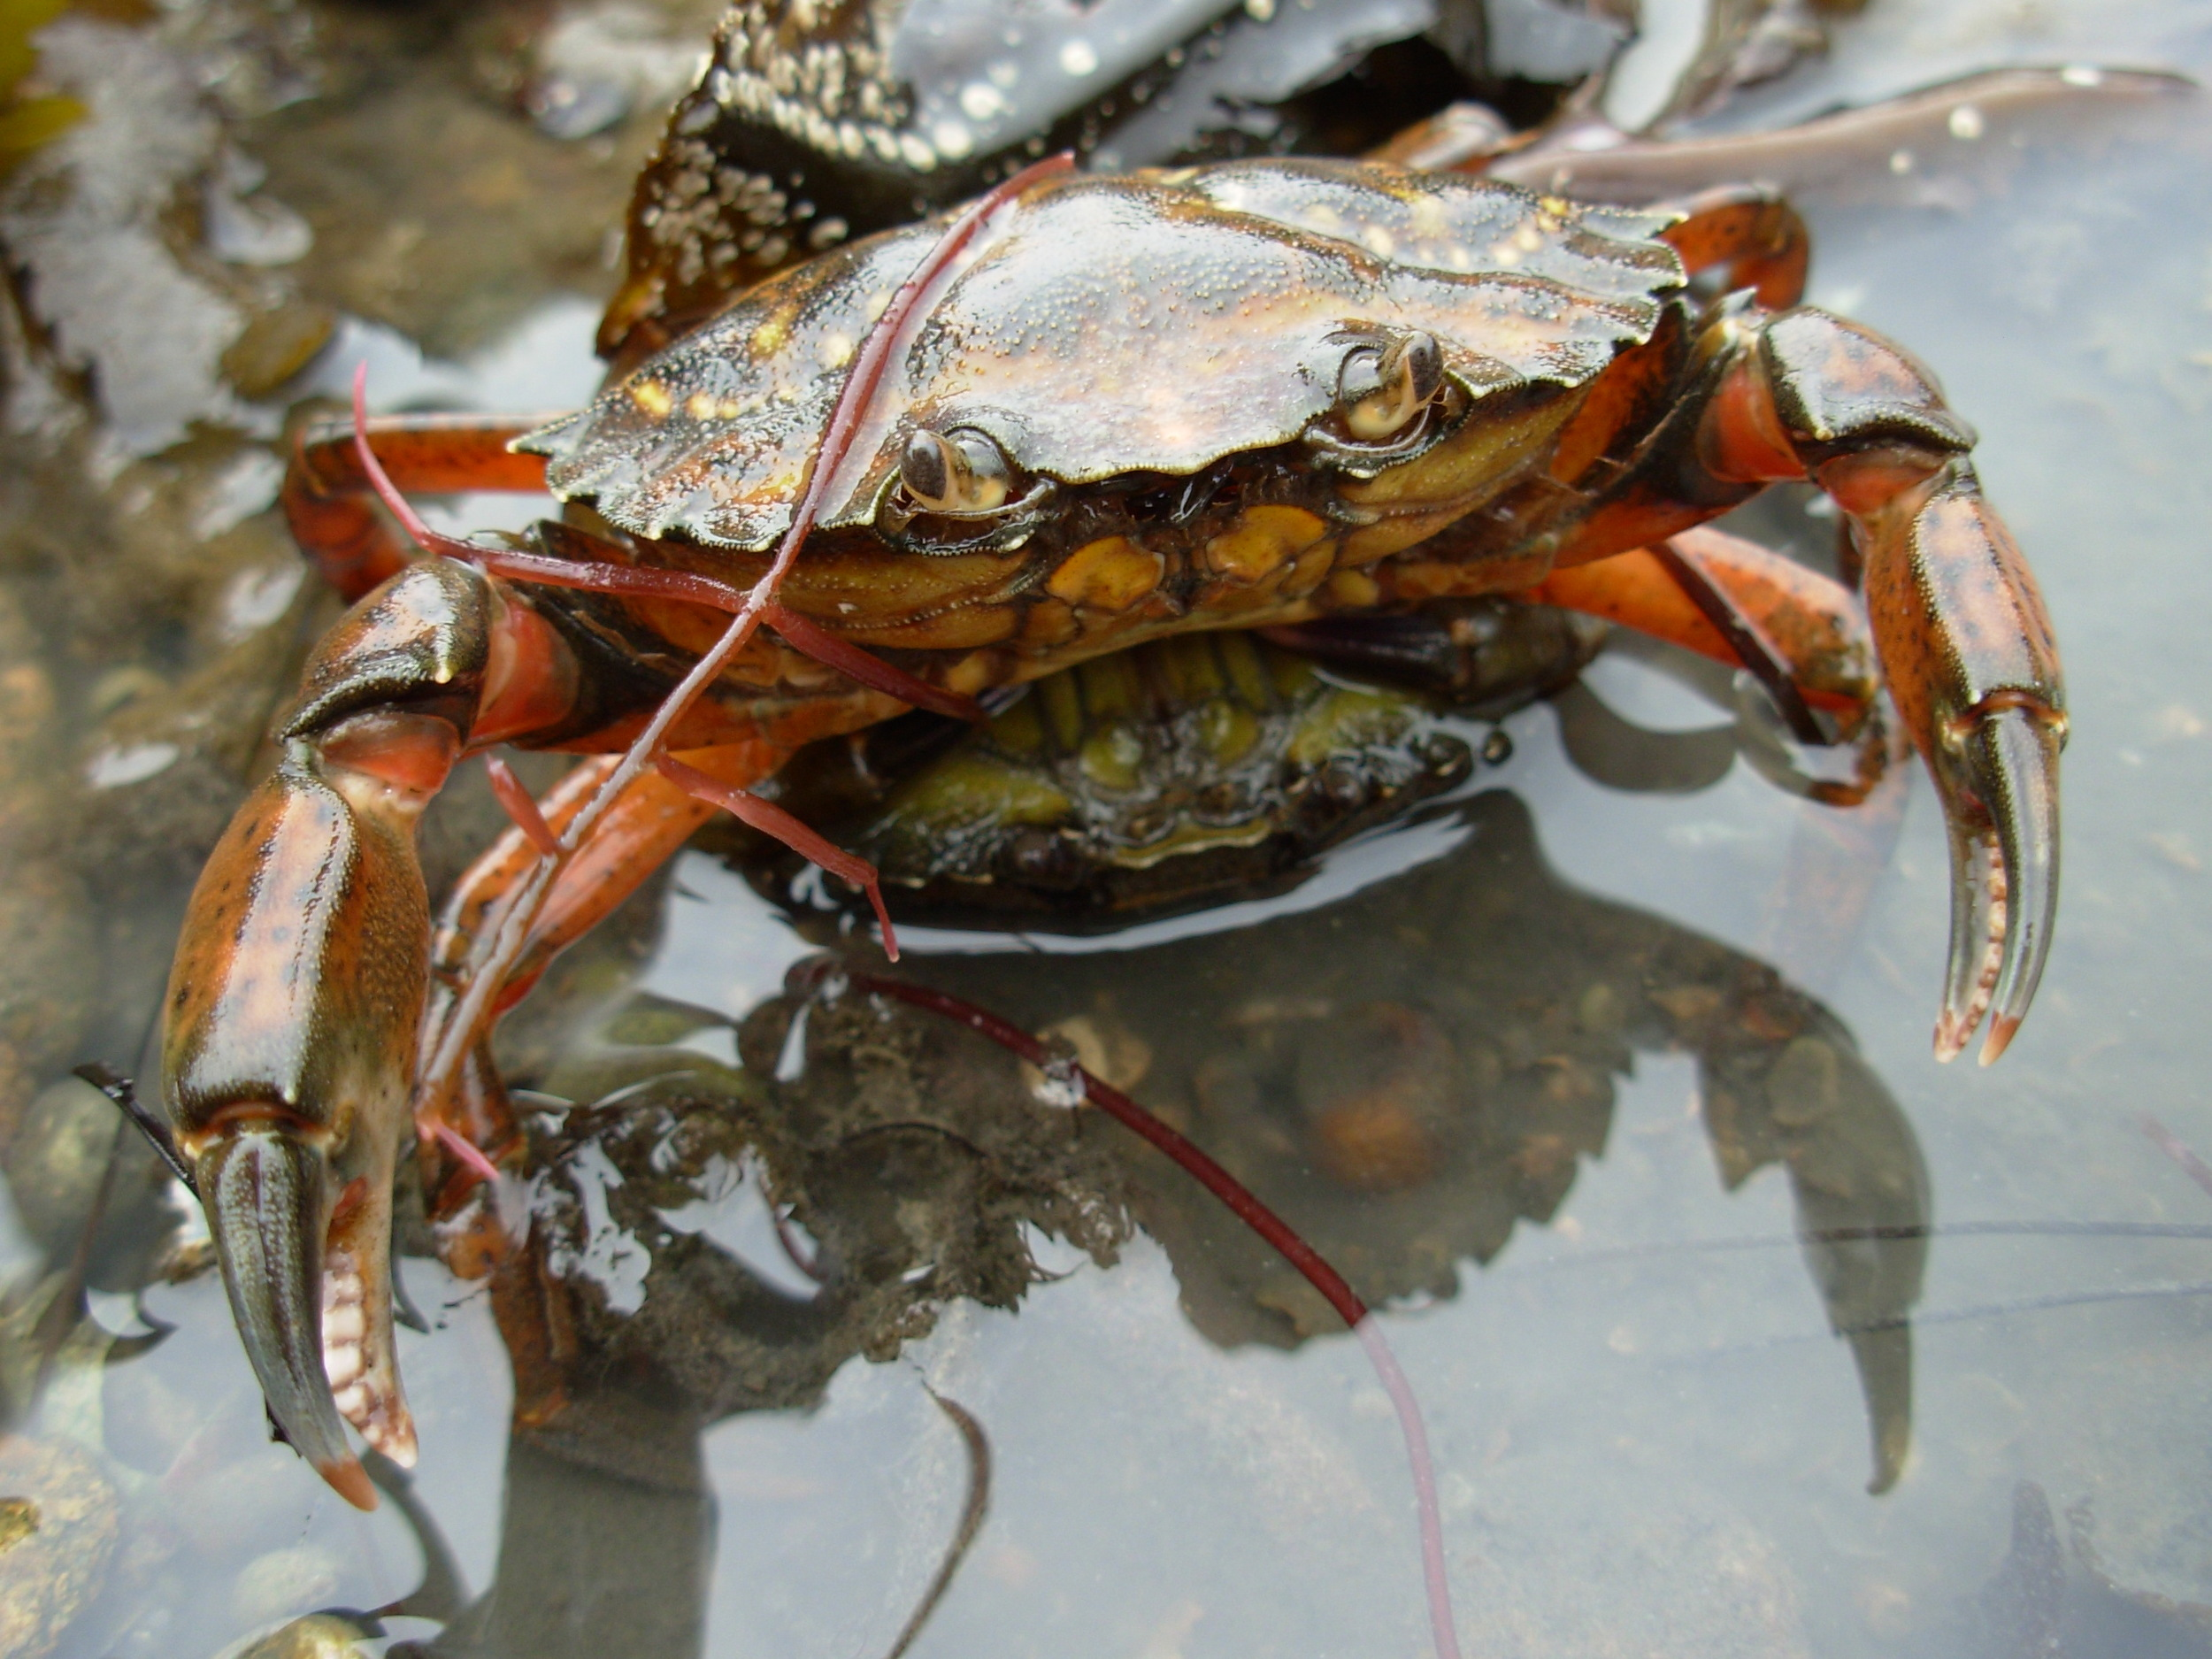 Carcinus maenas, the green crab. Introduced to the Eastern US in the nineteenth century, it is working its way northward as waters become warmer. Presently it is wreaking havoc in the clam flats on the coast of Maine. Photo courtesy of Wikimedia Commons.